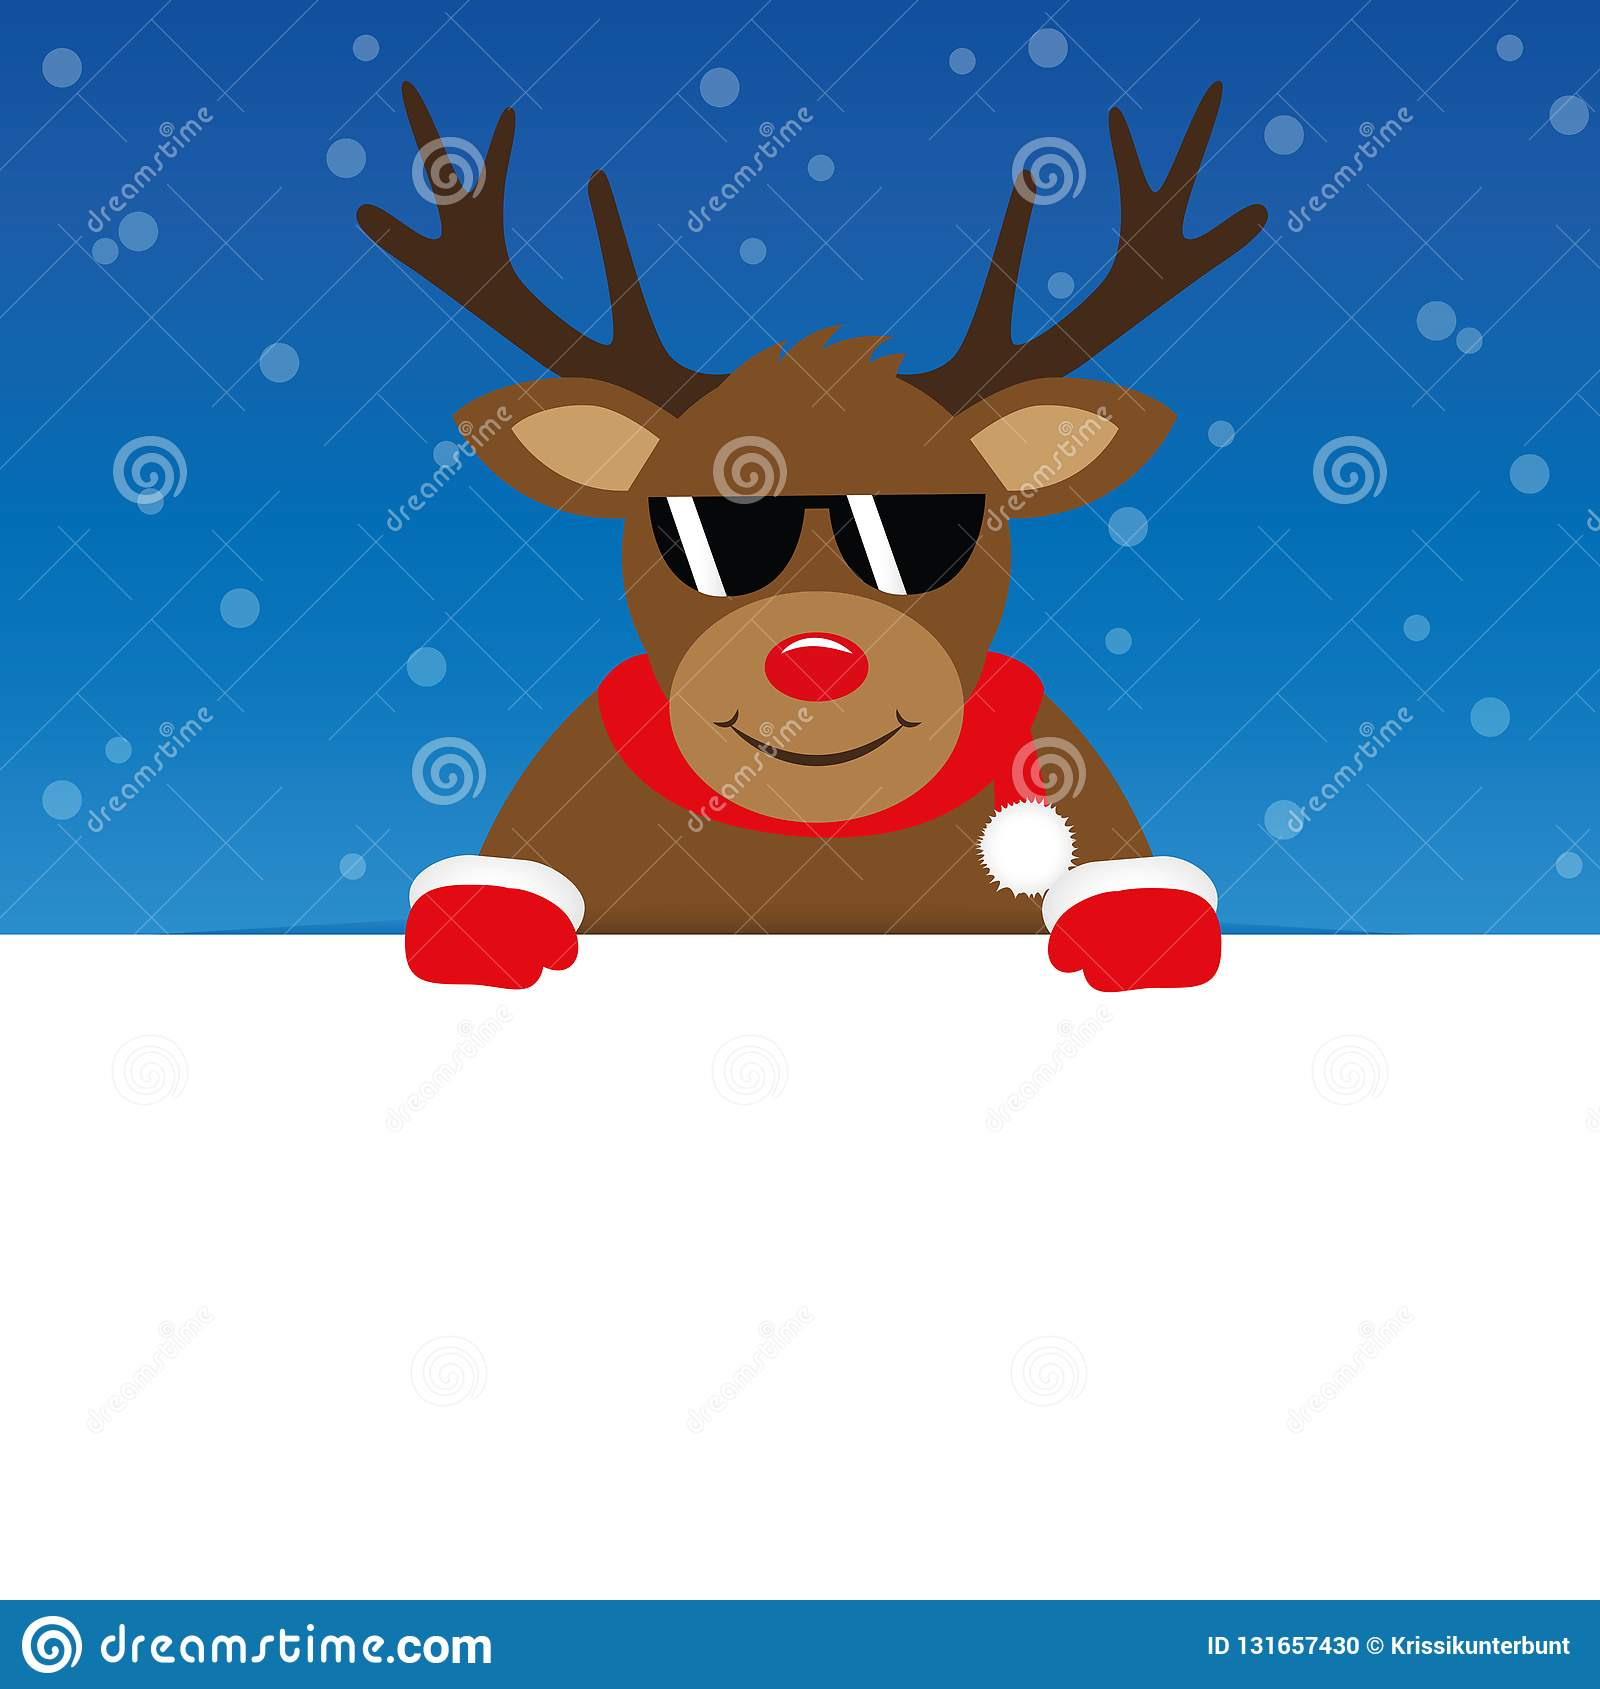 Happy cute reindeer with sunglasses on blue snowy background